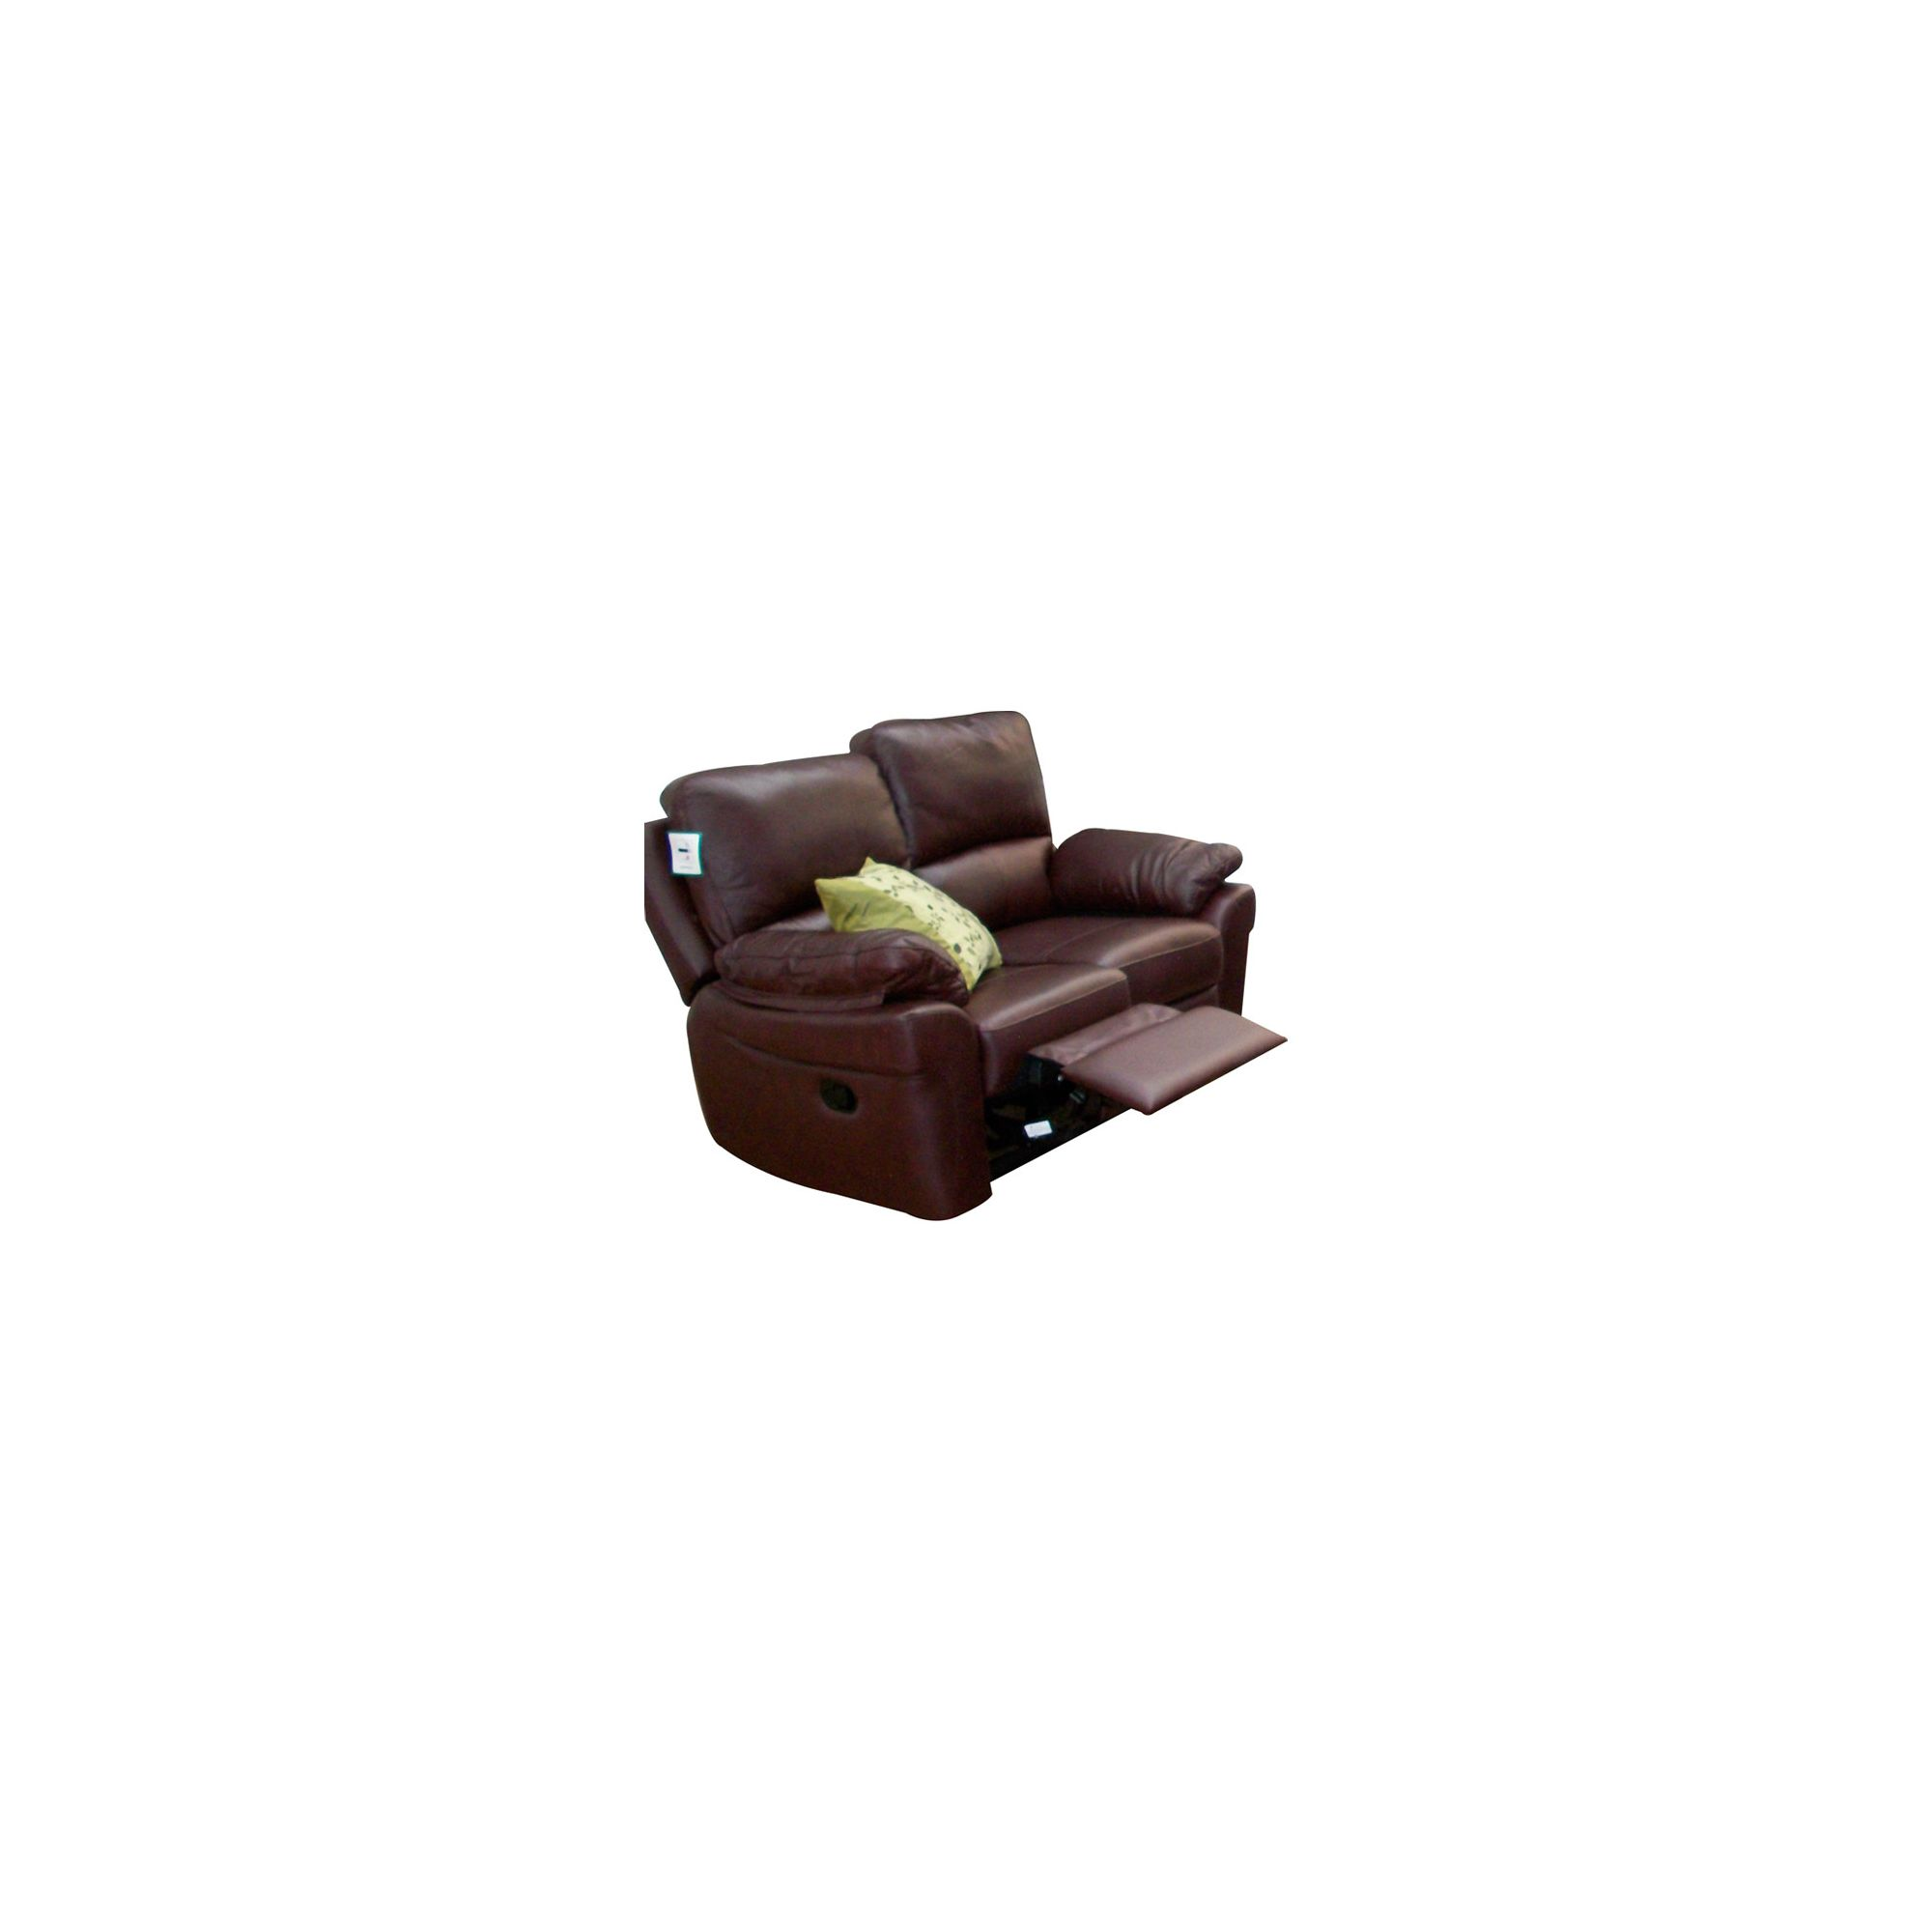 Furniture Link Monzano Two Seat Reclining Sofa in Chestnut - Black at Tesco Direct